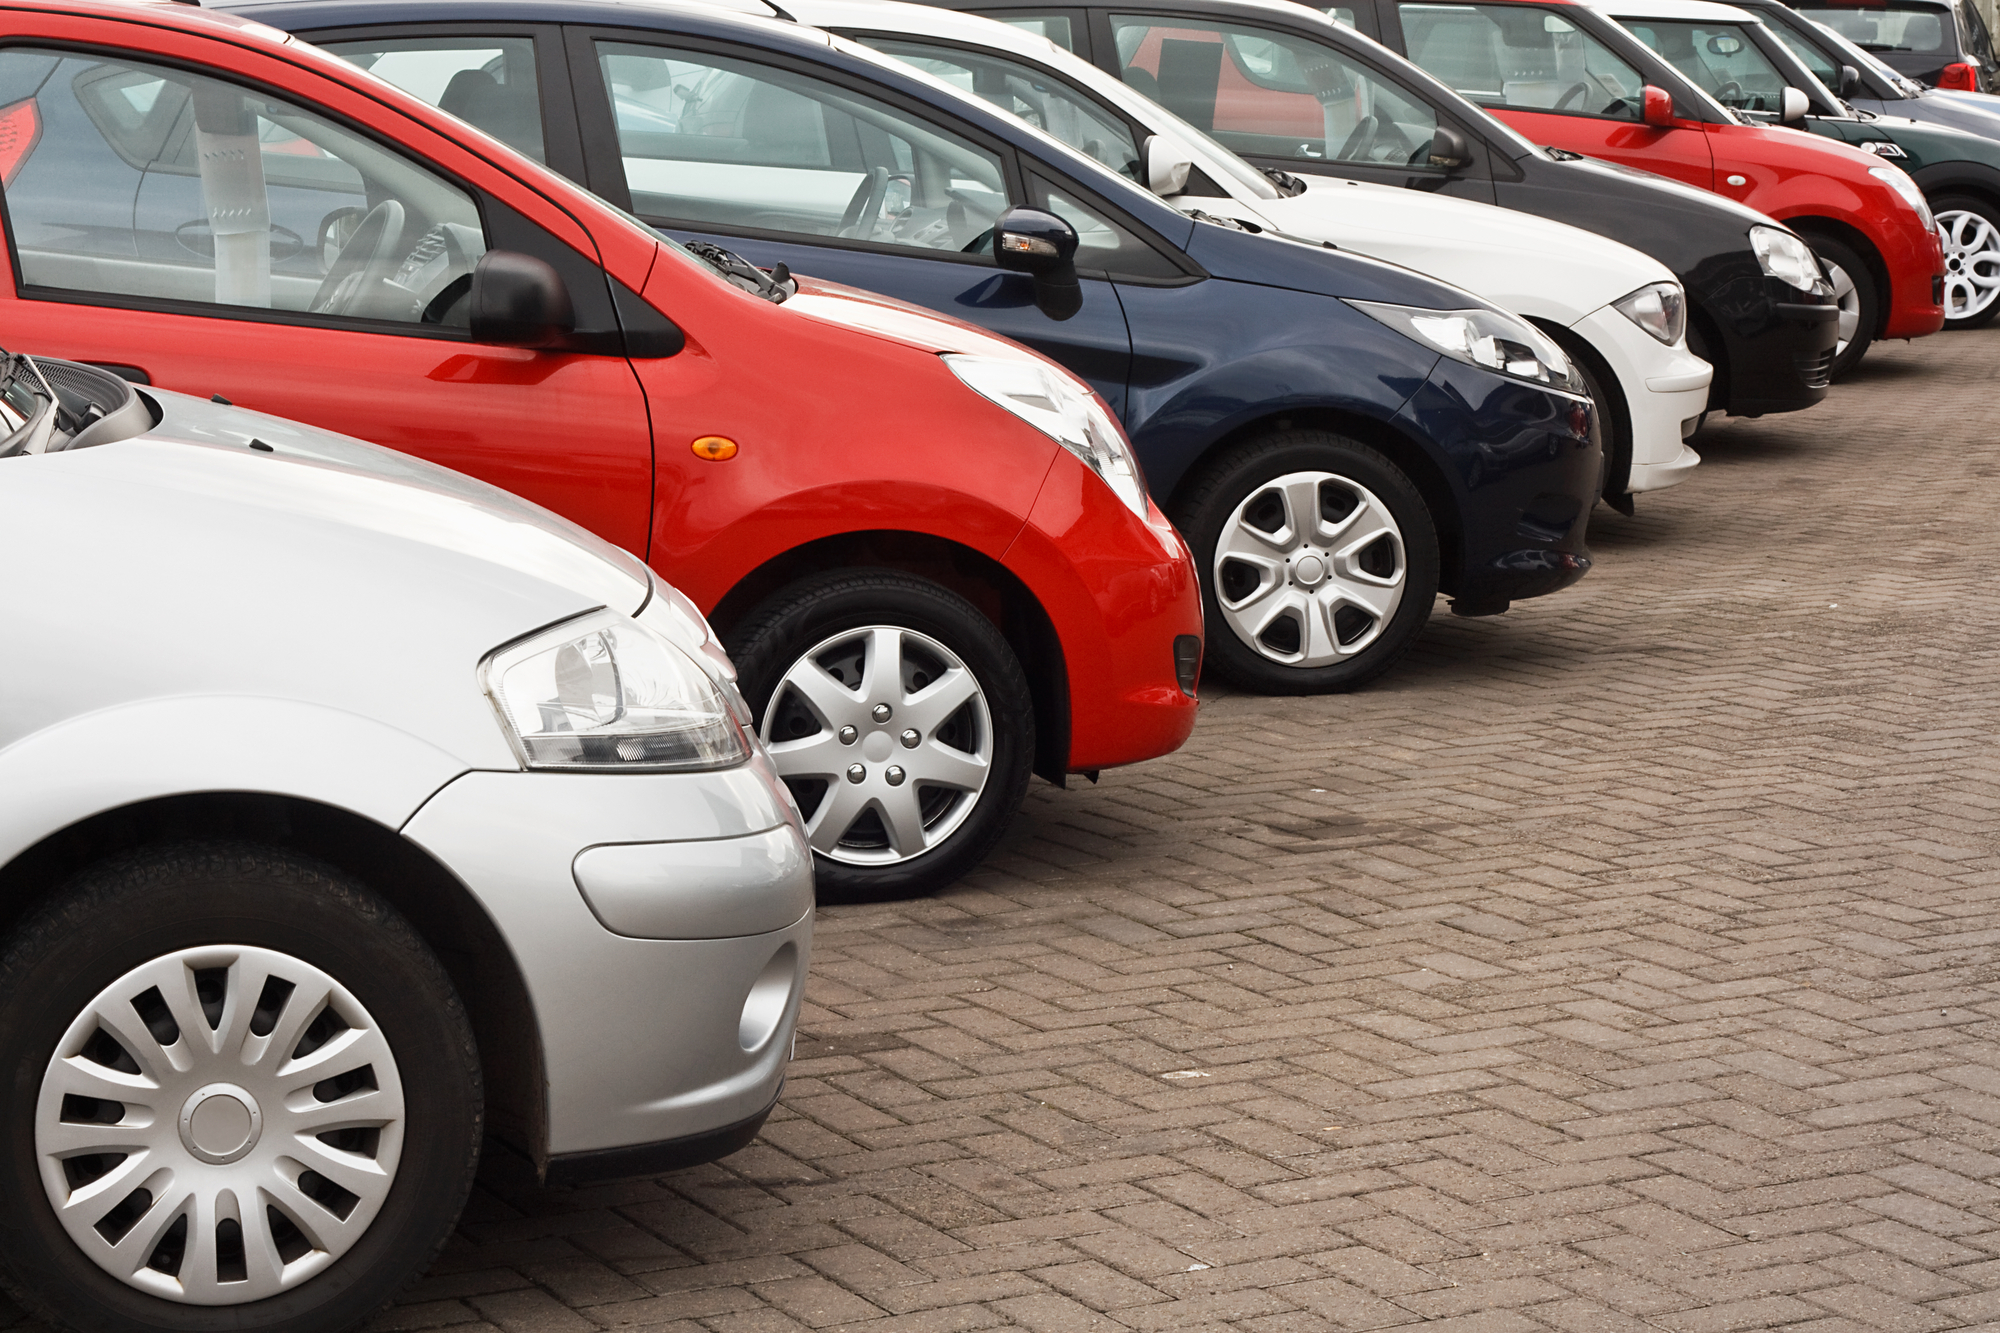 The Different Insurance Types You Can Get for Your Rental Car